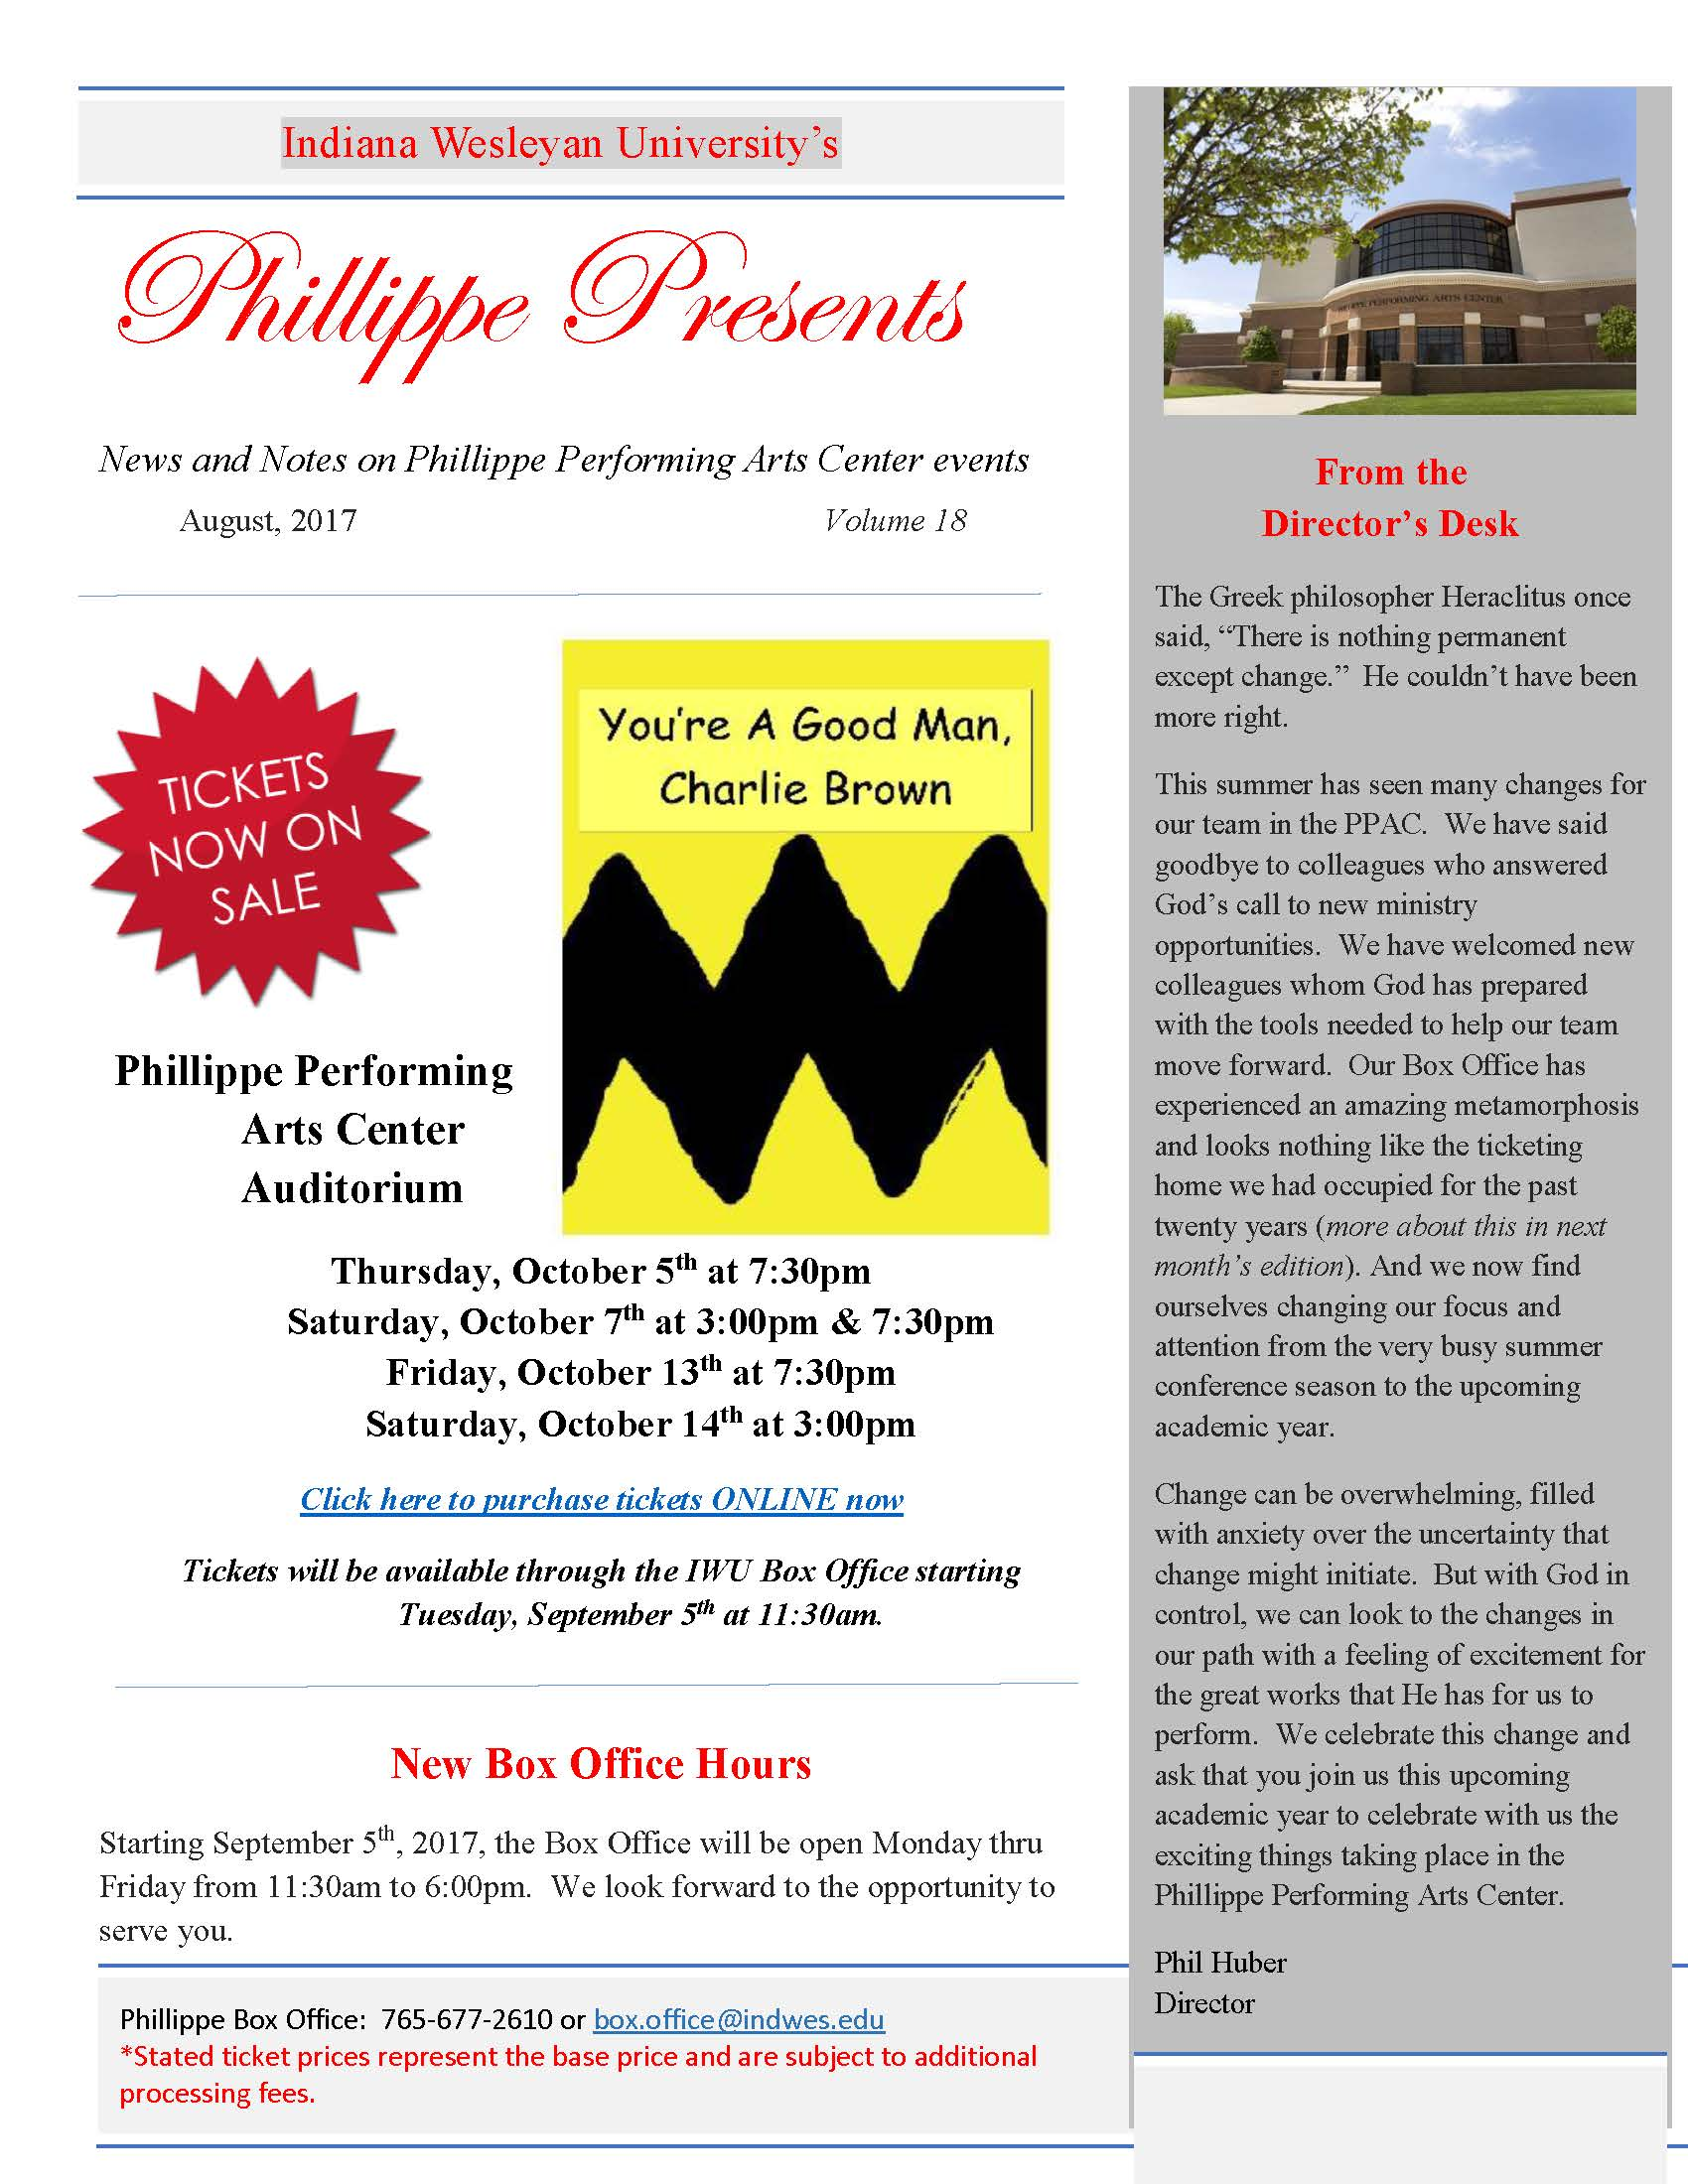 Phillippe Presents August 2017